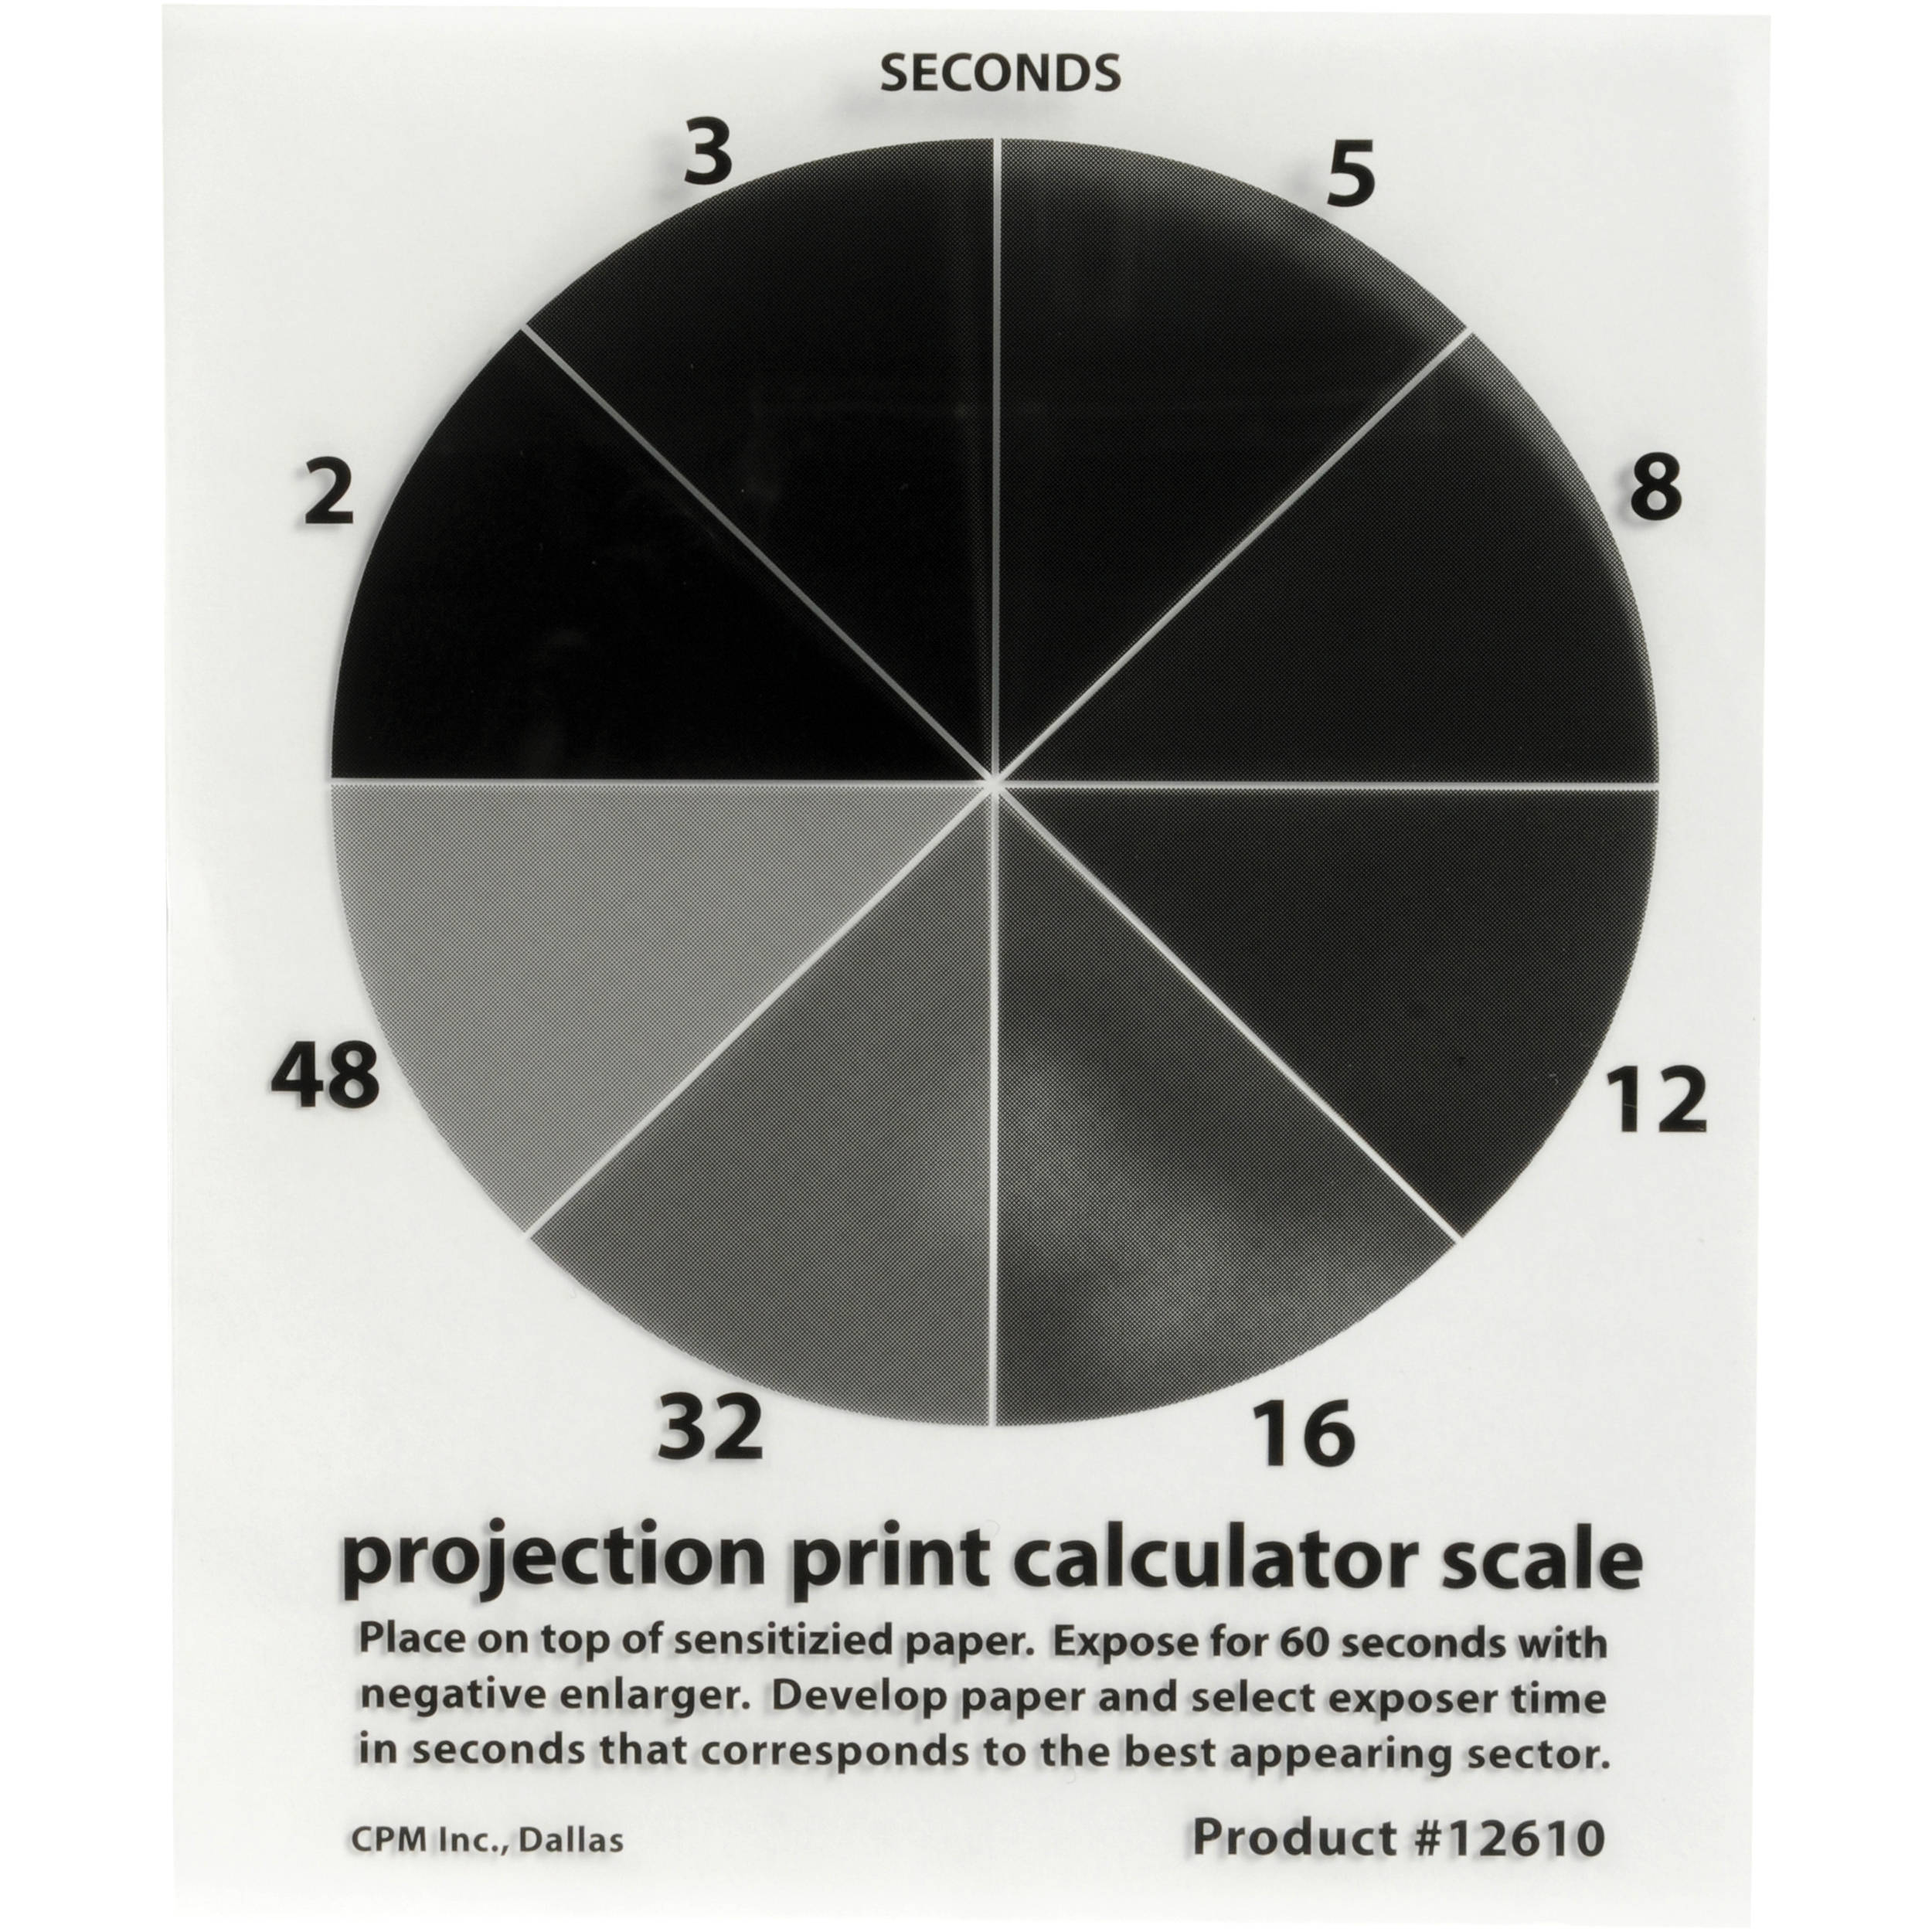 Delta_12610_Projection_Print_Calculator_Scale_15711 darkroom enlarger accessories b&h photo video  at eliteediting.co